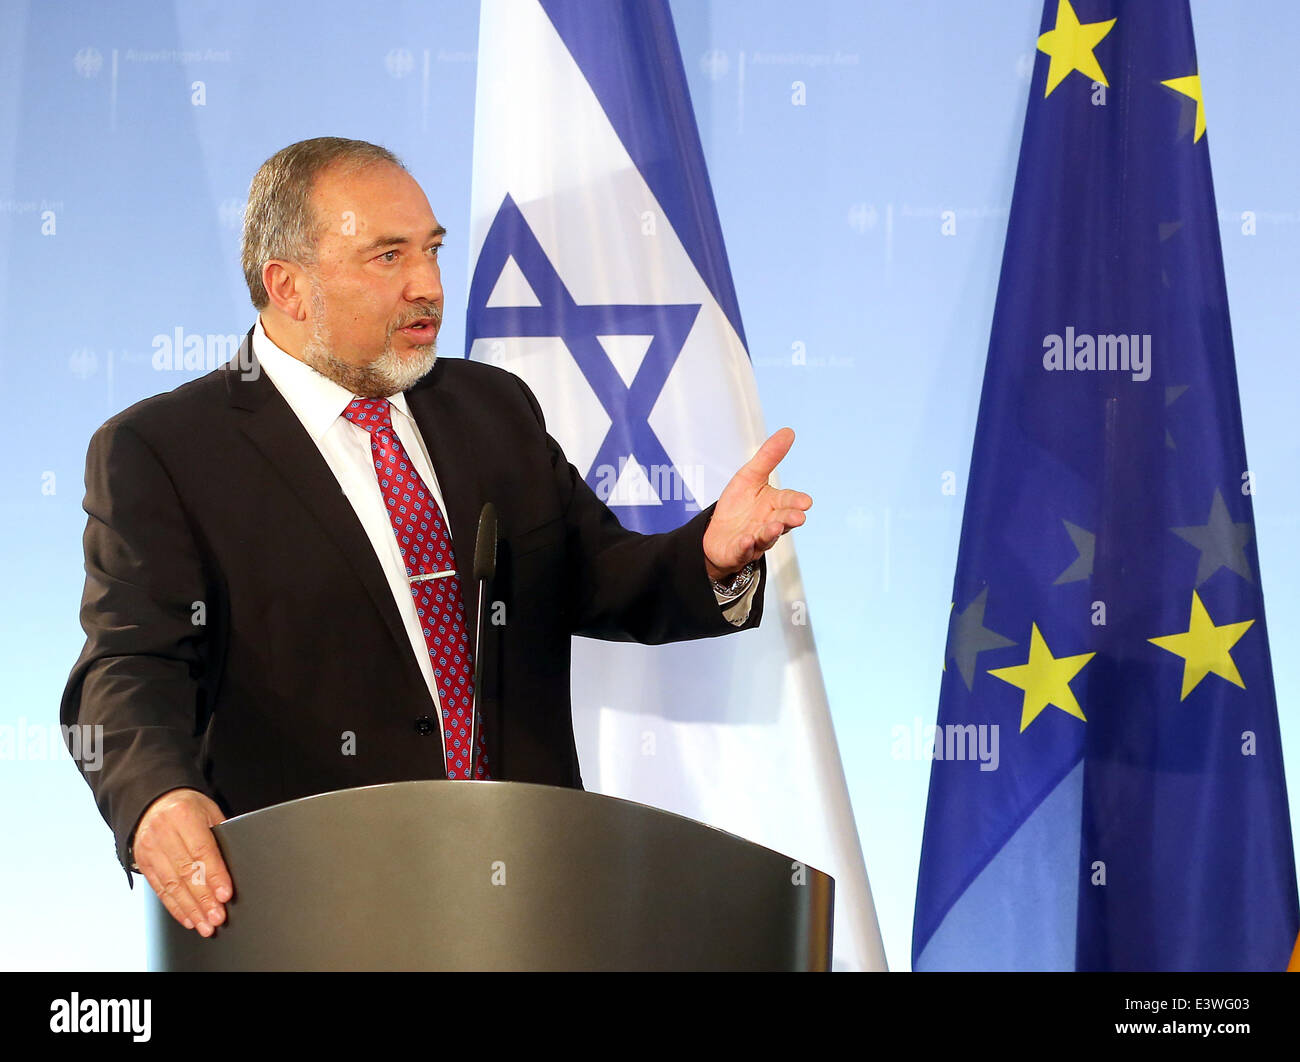 Berlin, Germany. 30th June, 2014. Israeli Minister of Foreign Affairs Avigdor Lieberman holds a press conference - Stock Image